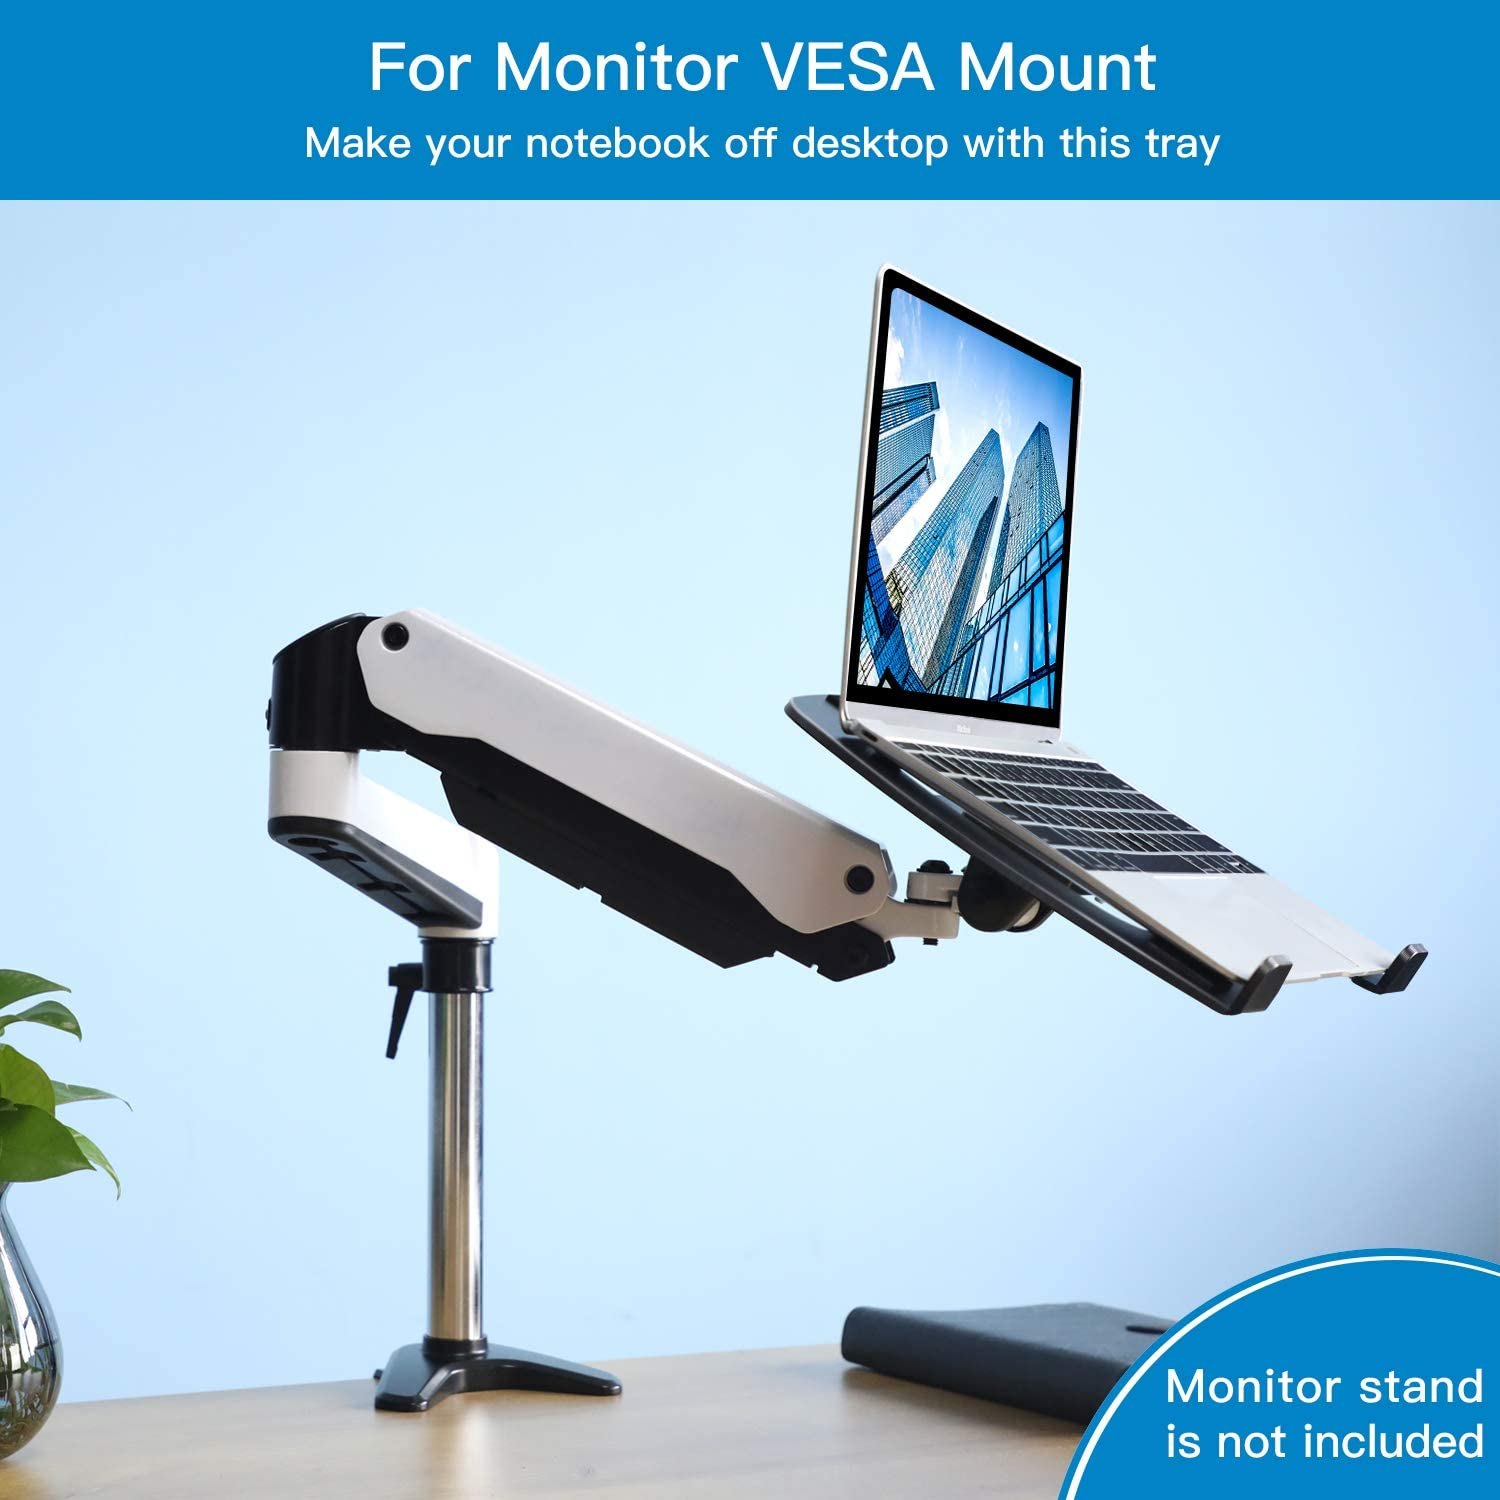 22lbs Capacity with Vented Cooling Platform Laptop Tray Steel Notebook Holder for Monitor VESA Mount Stand Fits VESA 100x100 mm Mounting Holes